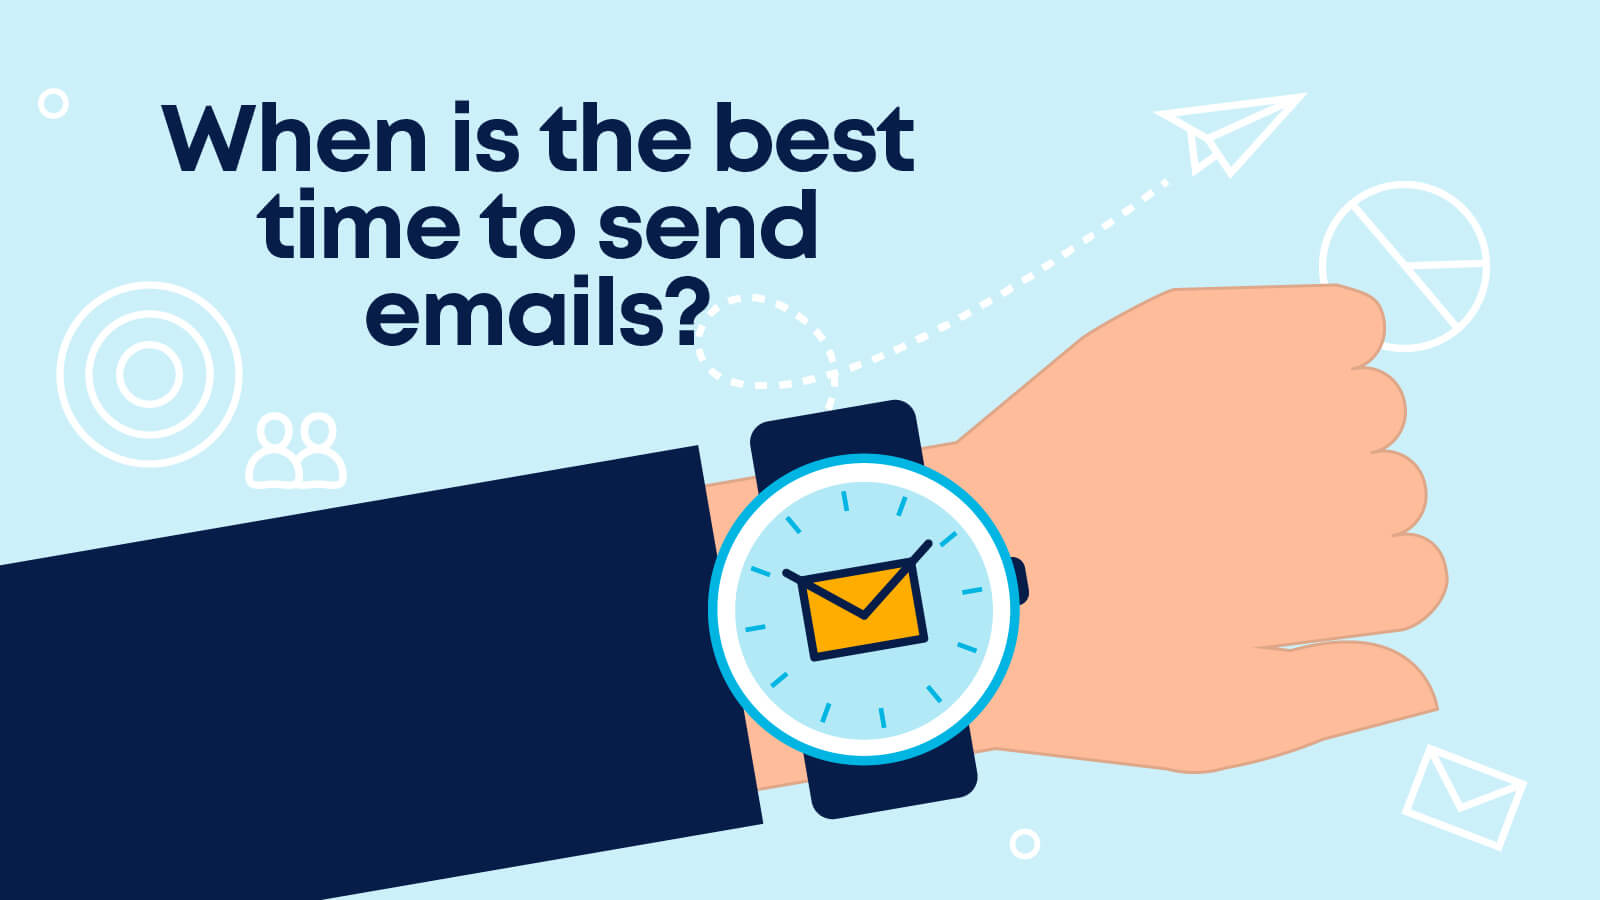 What's the best time to send emails